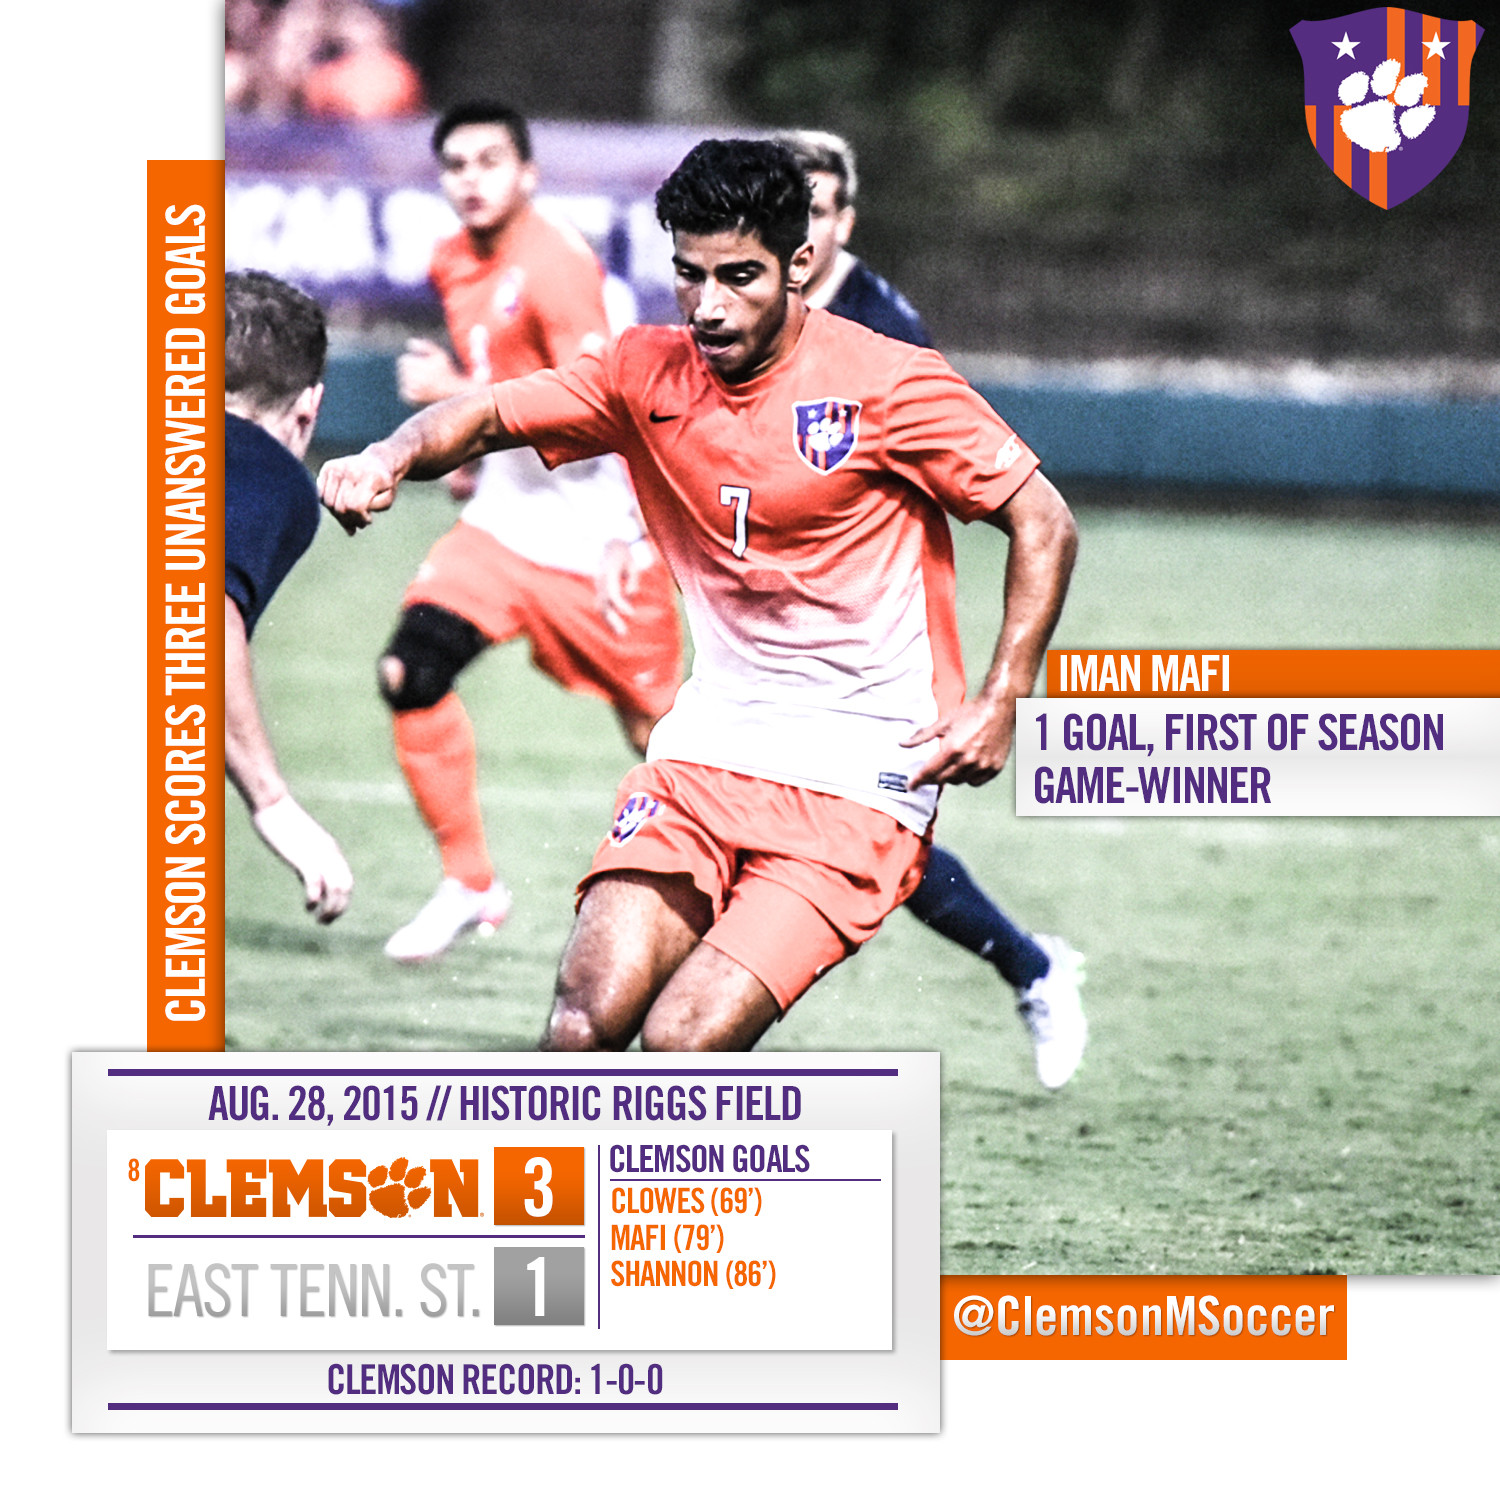 Clemson Scores Three Unanswered Goals to Win